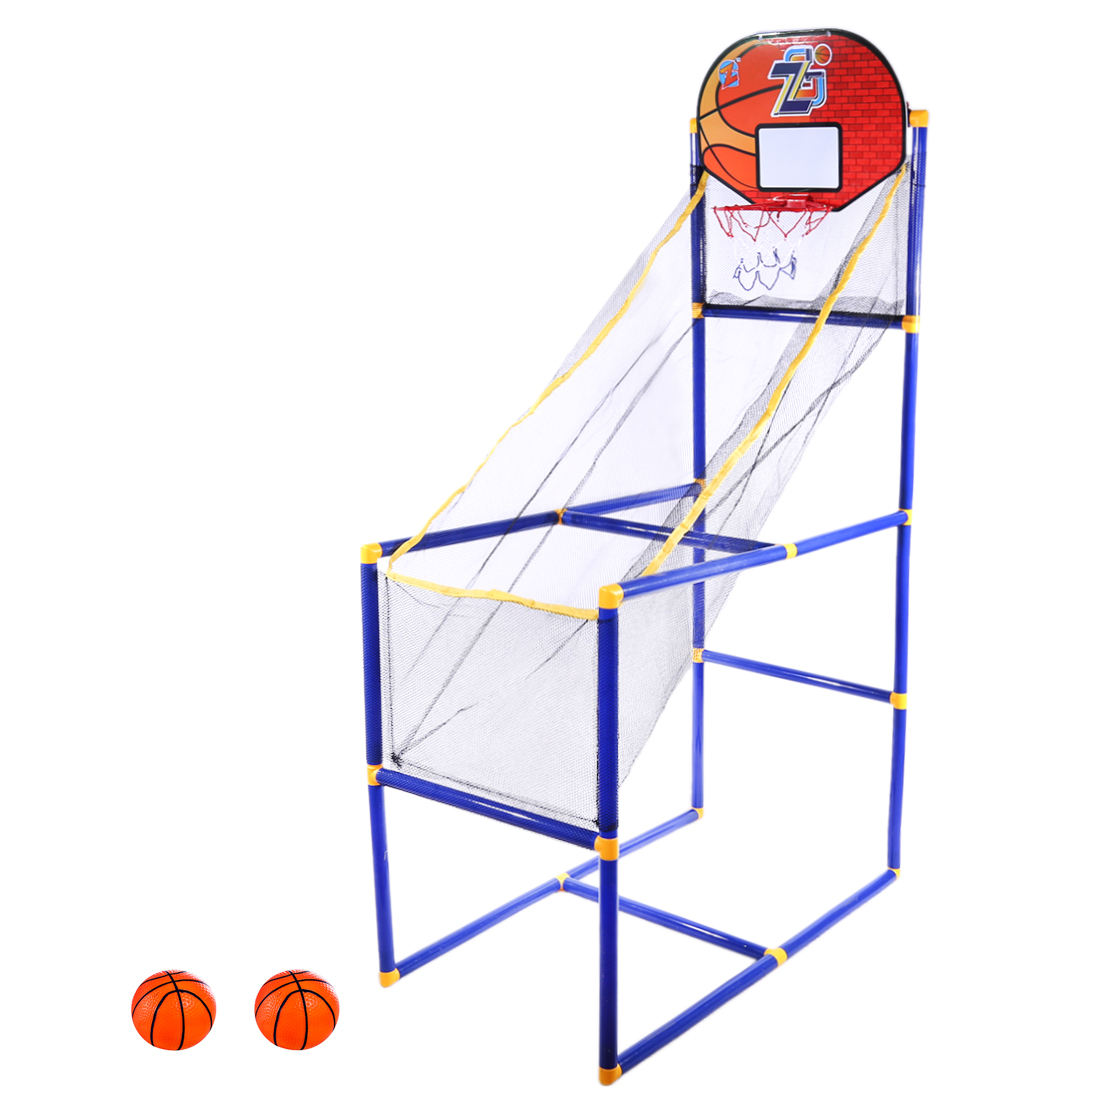 149cm Children Sports Equipment Indoor Outdoor Basketball Shooting Toy for Kids Traning Exercise ZG270 7